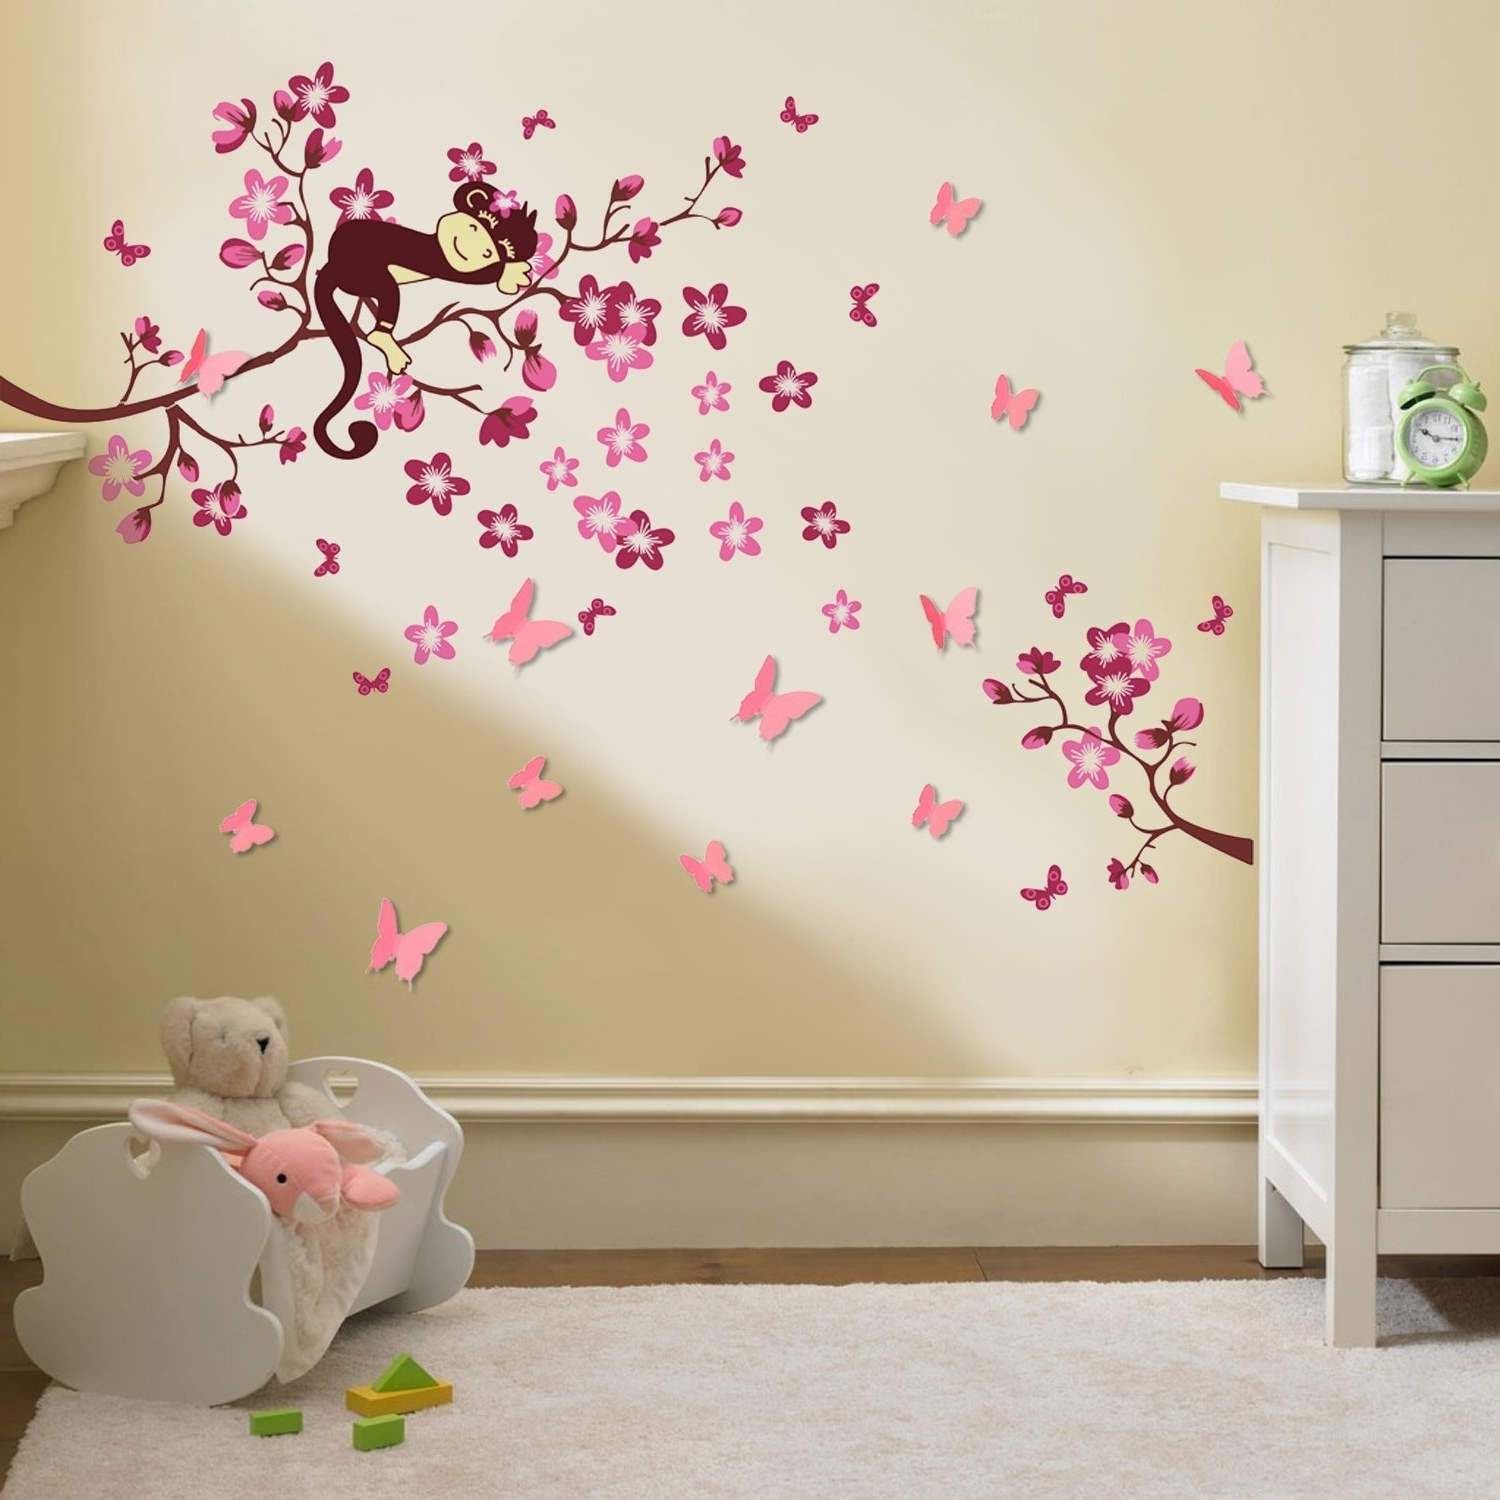 Owl Wall Art Stickers Within Most Popular Walplus Stickers Muraux 3D Pour Chambre D'enfant Papillons/fleurs (View 9 of 15)